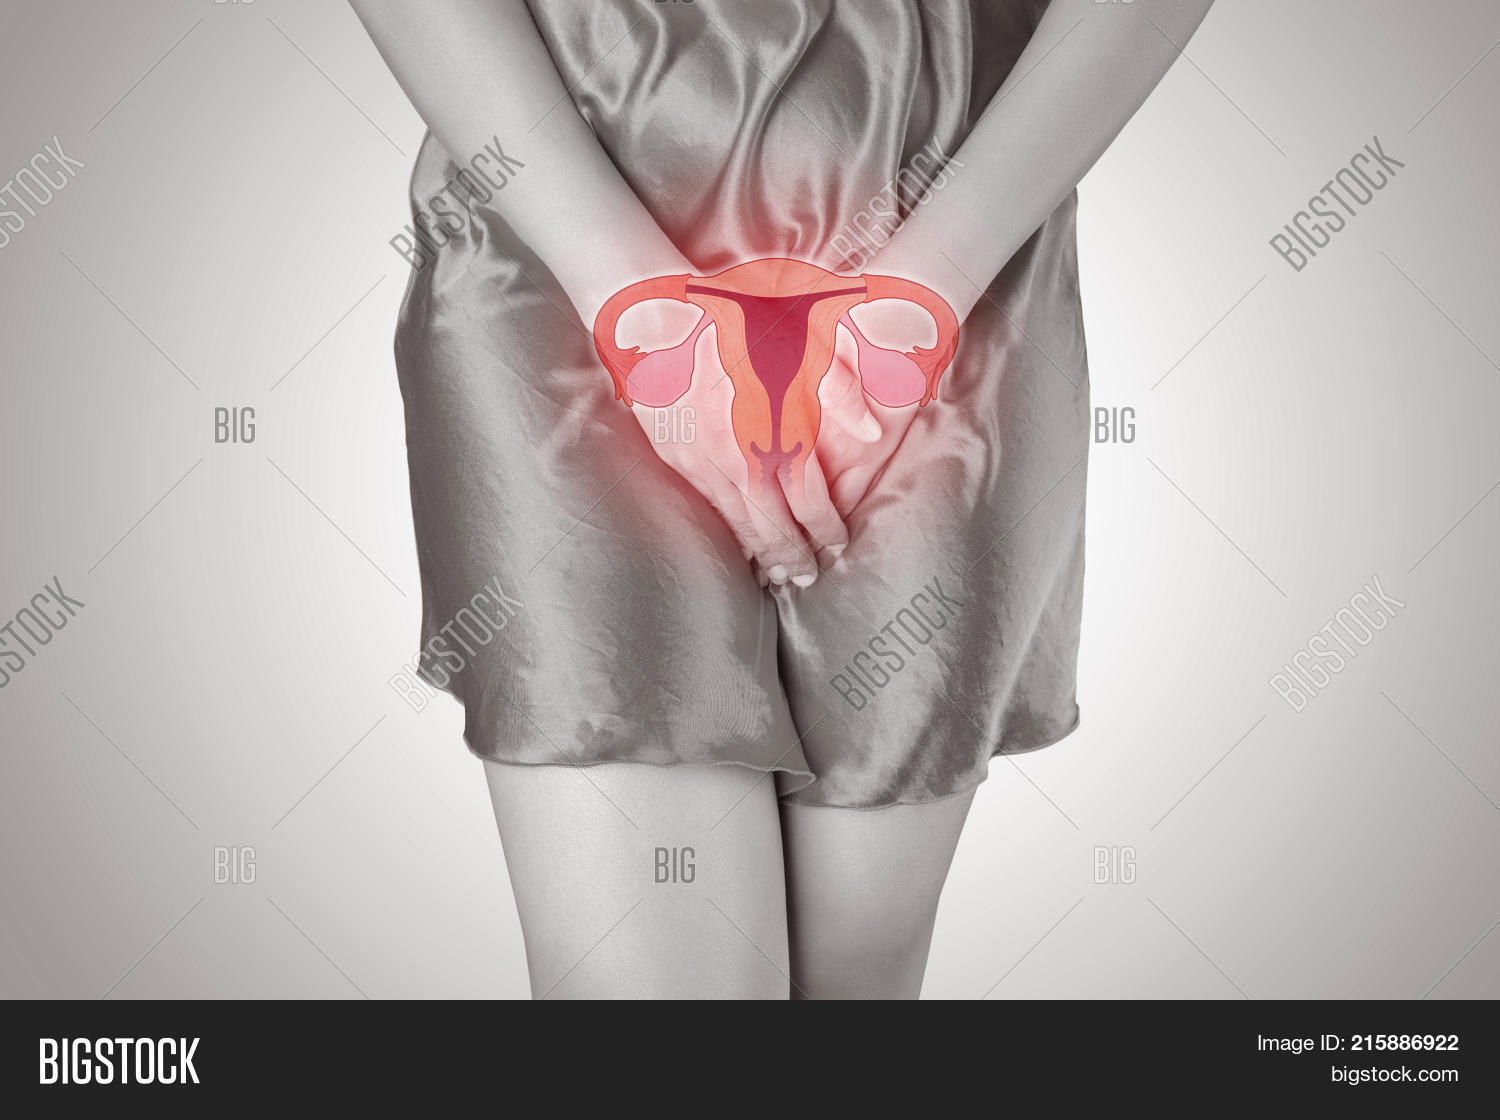 Photo Uterus On Woman Image Photo Free Trial Bigstock